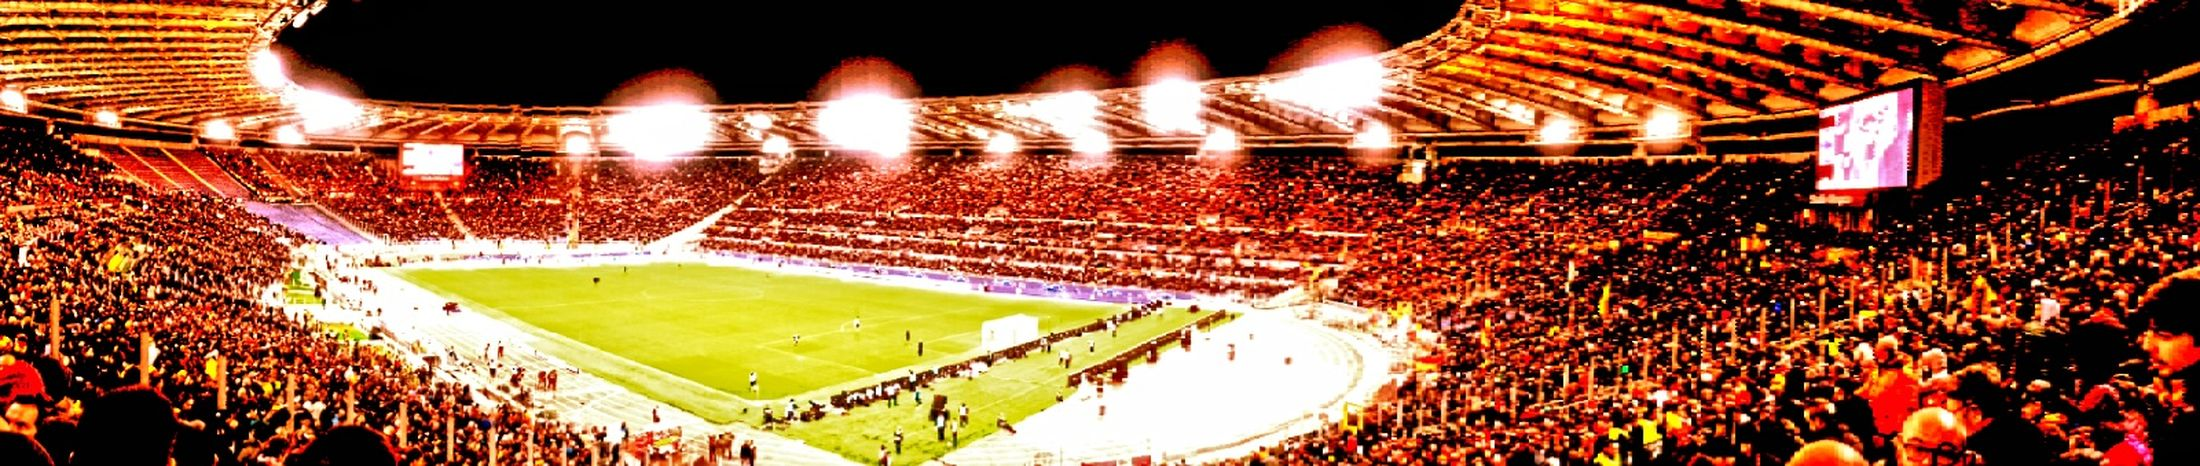 match A.S. Roma vs Real Madrid Roma Panoramic Photography Francesco Totti Stadio Olimpico A.S. Roma Rome, Italy Lights Sports Venue Match - Sport Soccer Team